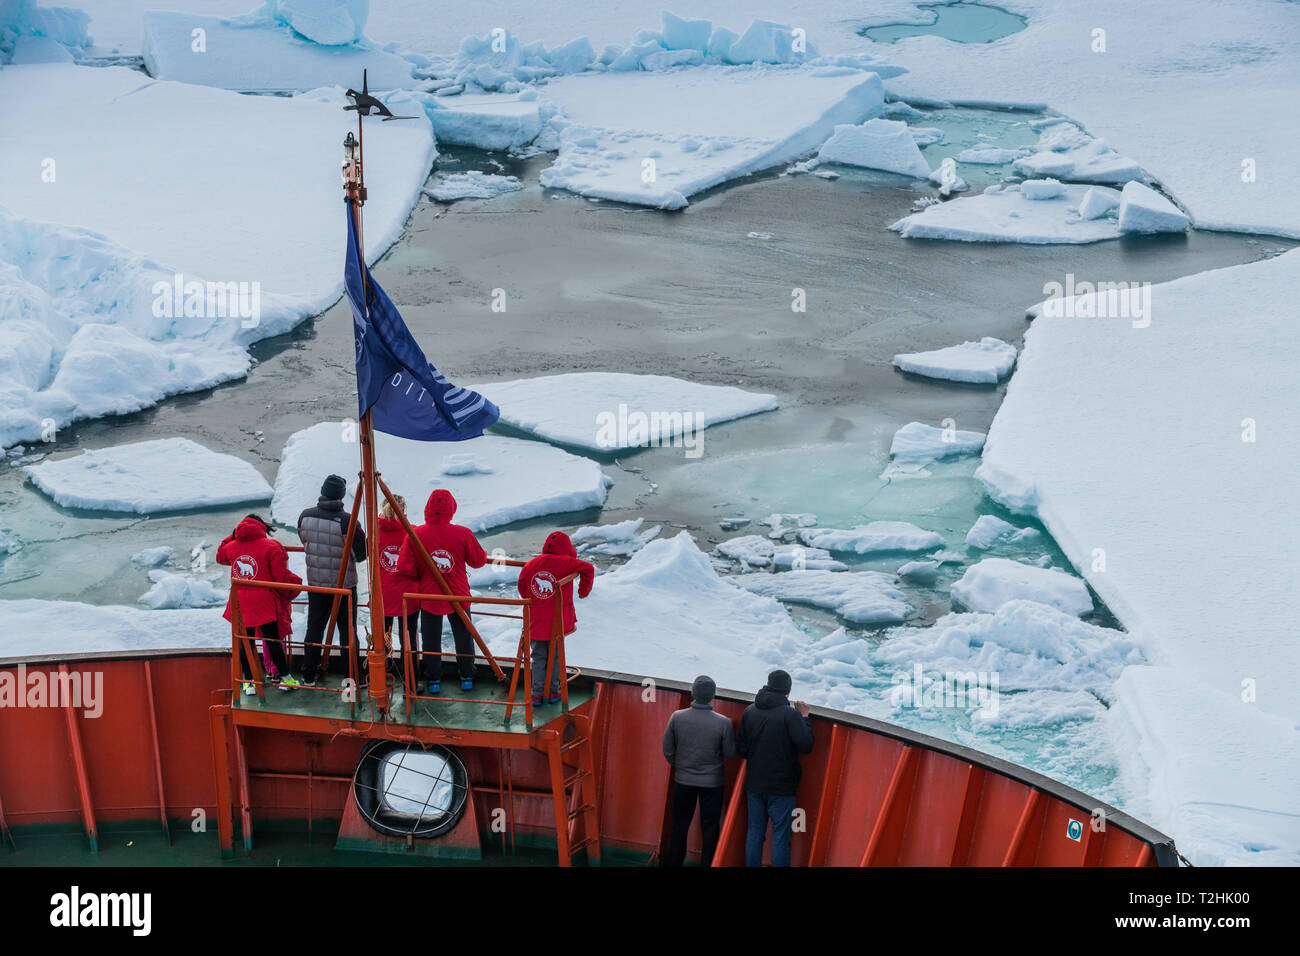 Tourists watching the ice breaking on board of an icebreaker, North Pole, Arctic Stock Photo